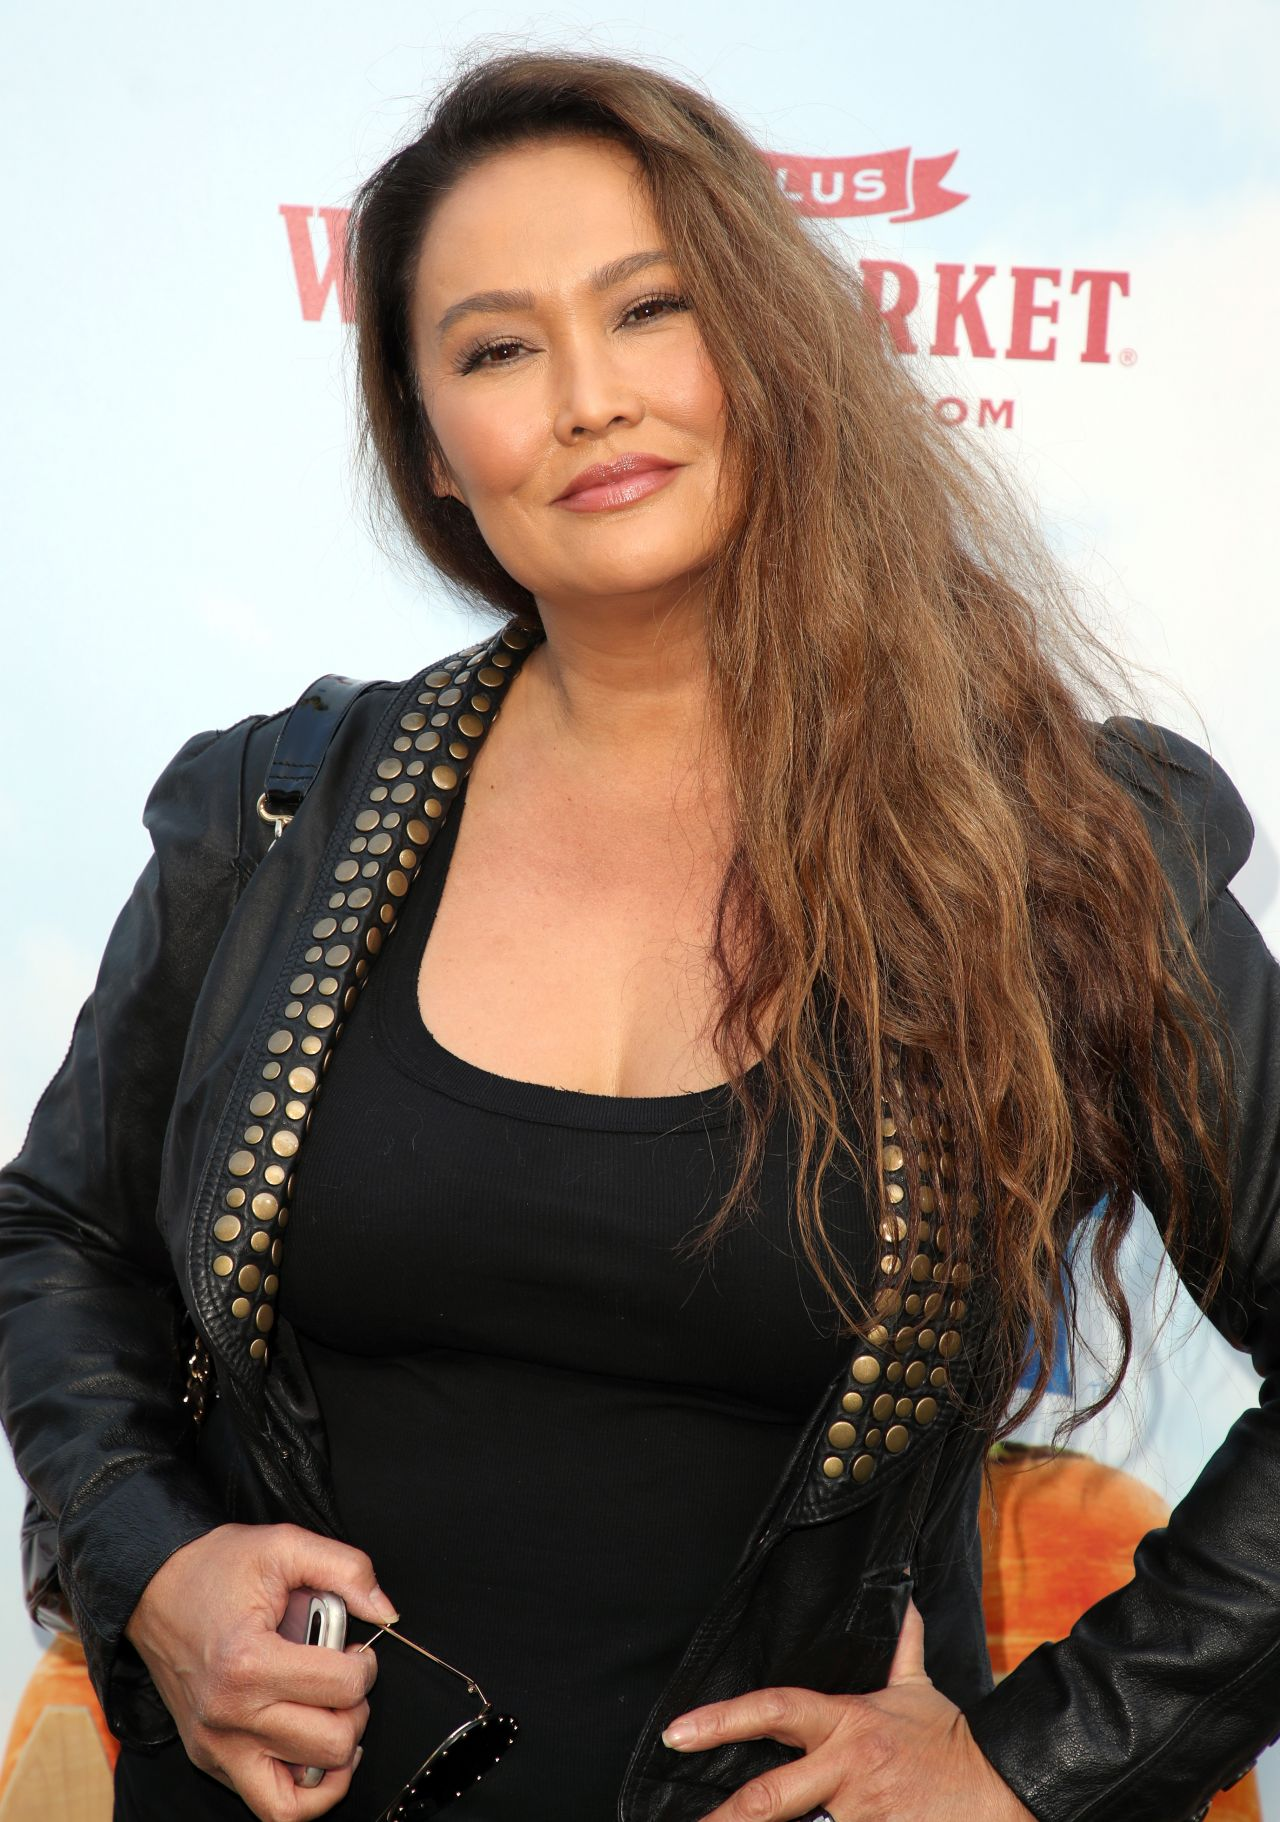 Tia Carrere Peter Rabbit Premiere In Los Angeles